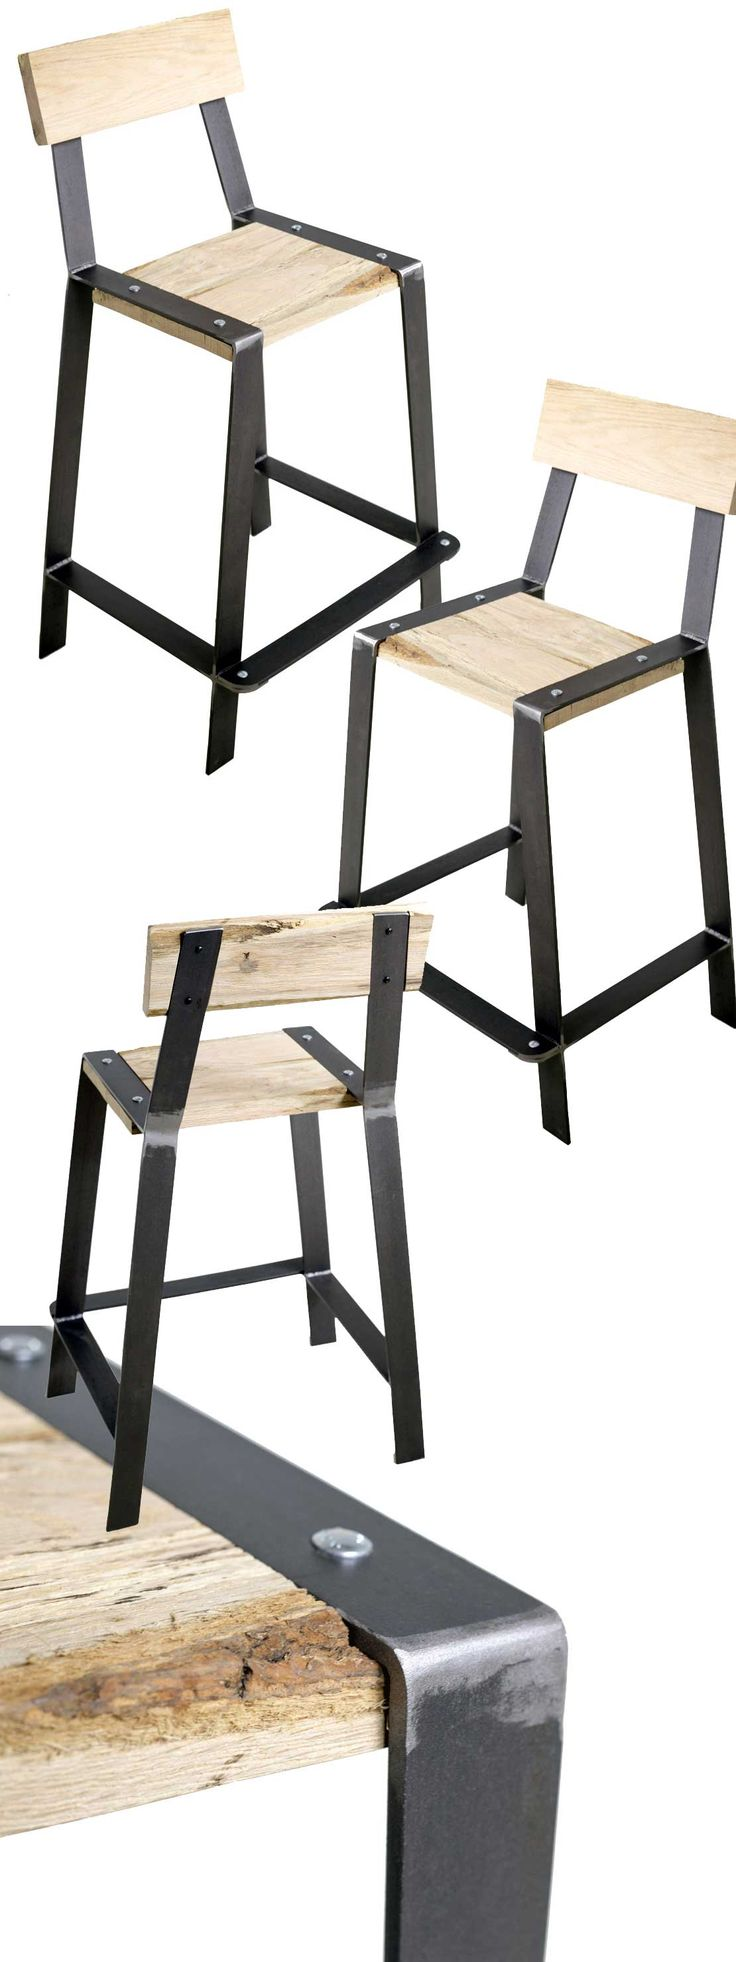 """It's as comfortable as it is stylish! At home in contemporary and rustic environments, every piece is totally unique and starts with reclaimed """"slabs."""" Find the Urban Forge Counter Stool as seen in the counter stool collection at http://www.timelesswroughtiron.com/Urban-Forge-25-inch-Iron-Barstool-p/twi-sci-980-236-25in.htm"""